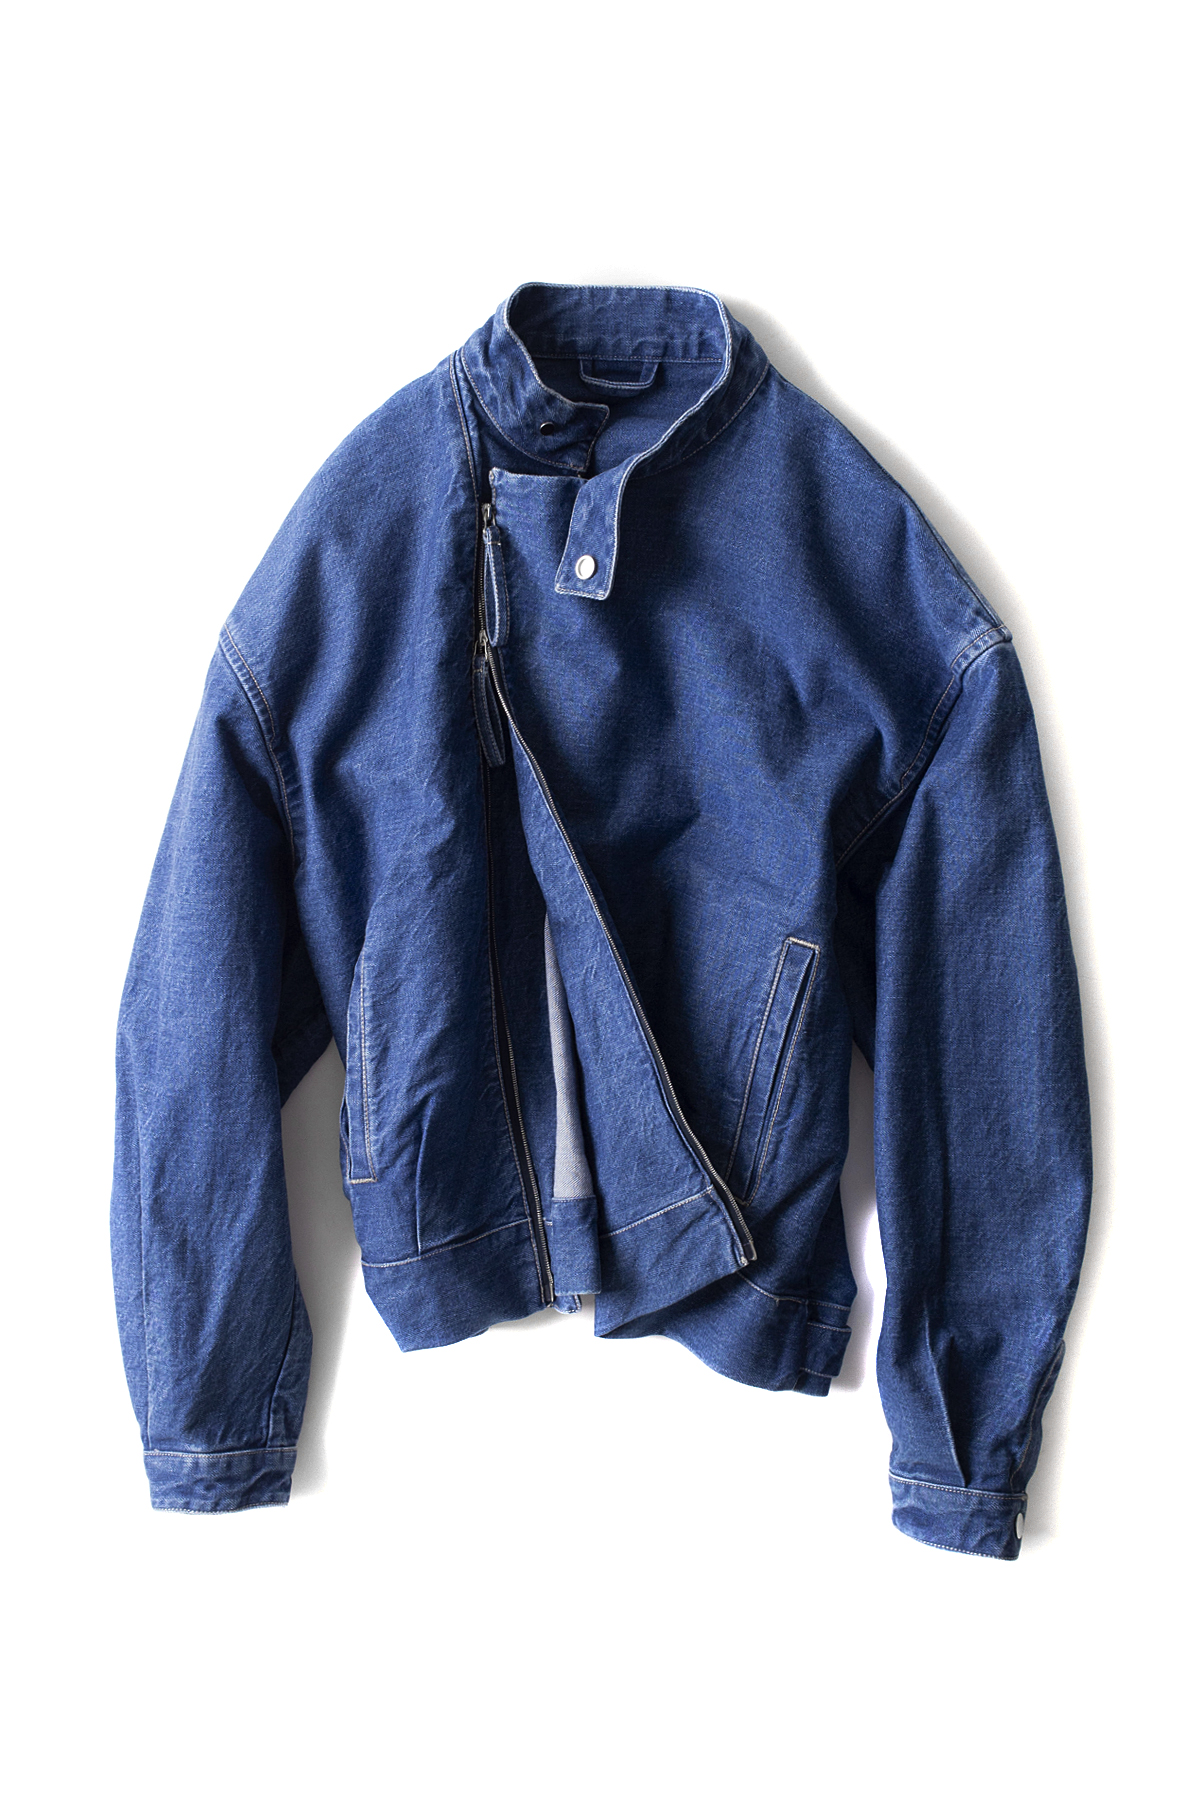 E. Tautz : Jeremy Jacket (Blue)